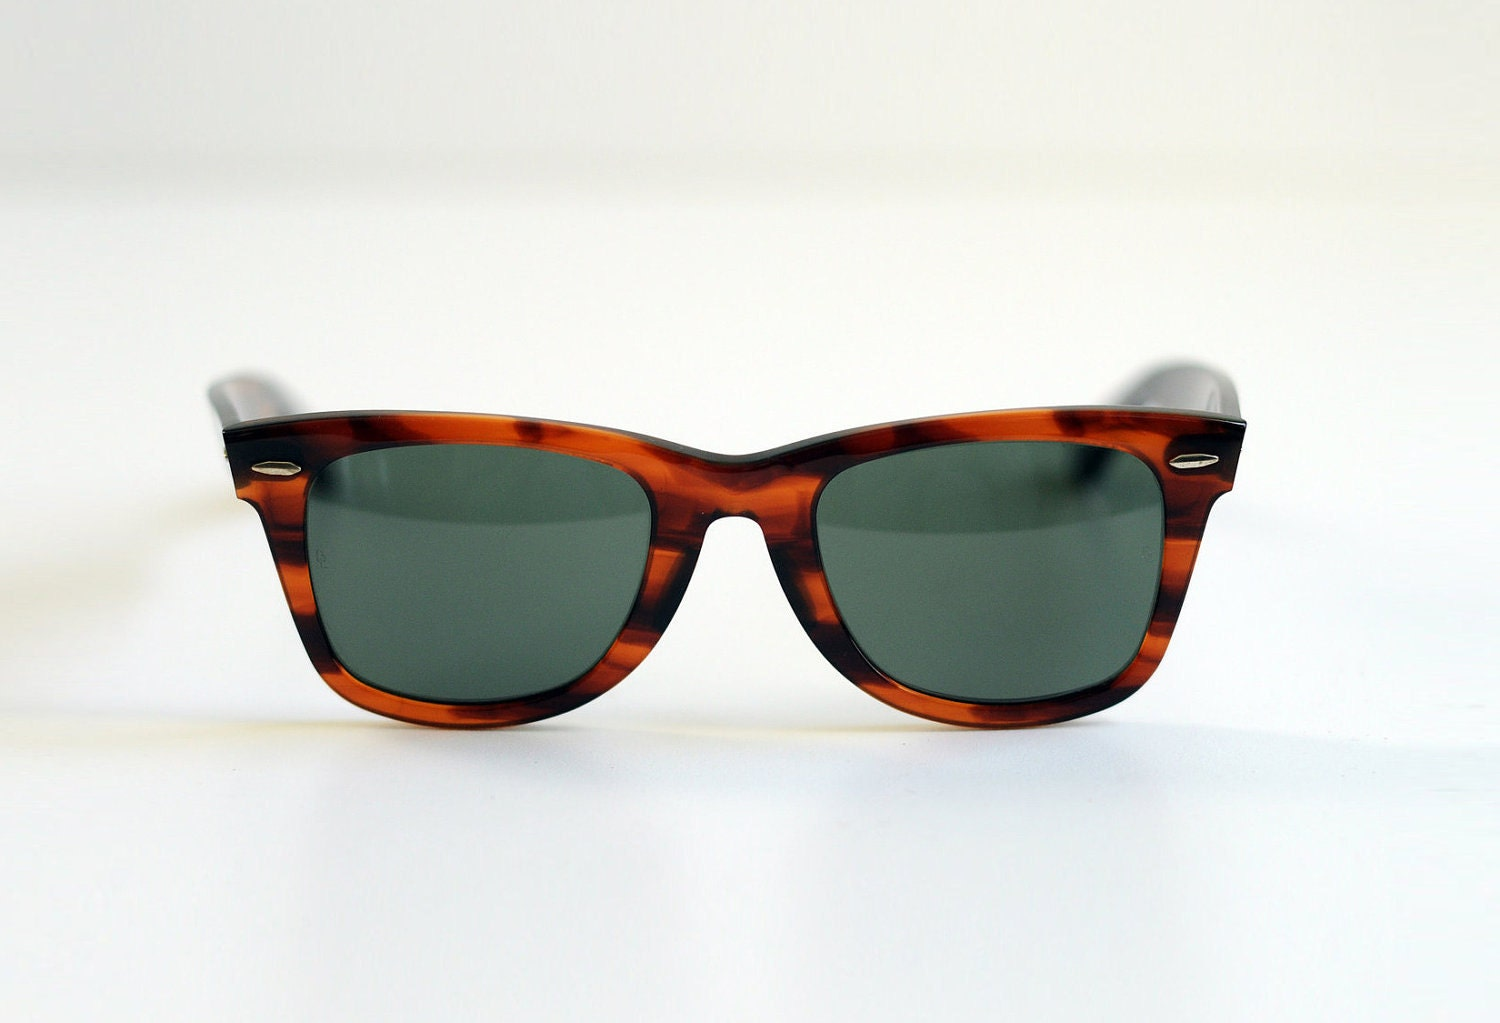 31462c3b81 B L Ray Ban RB3025 Replacement Sunglass Lenses - 64mm …